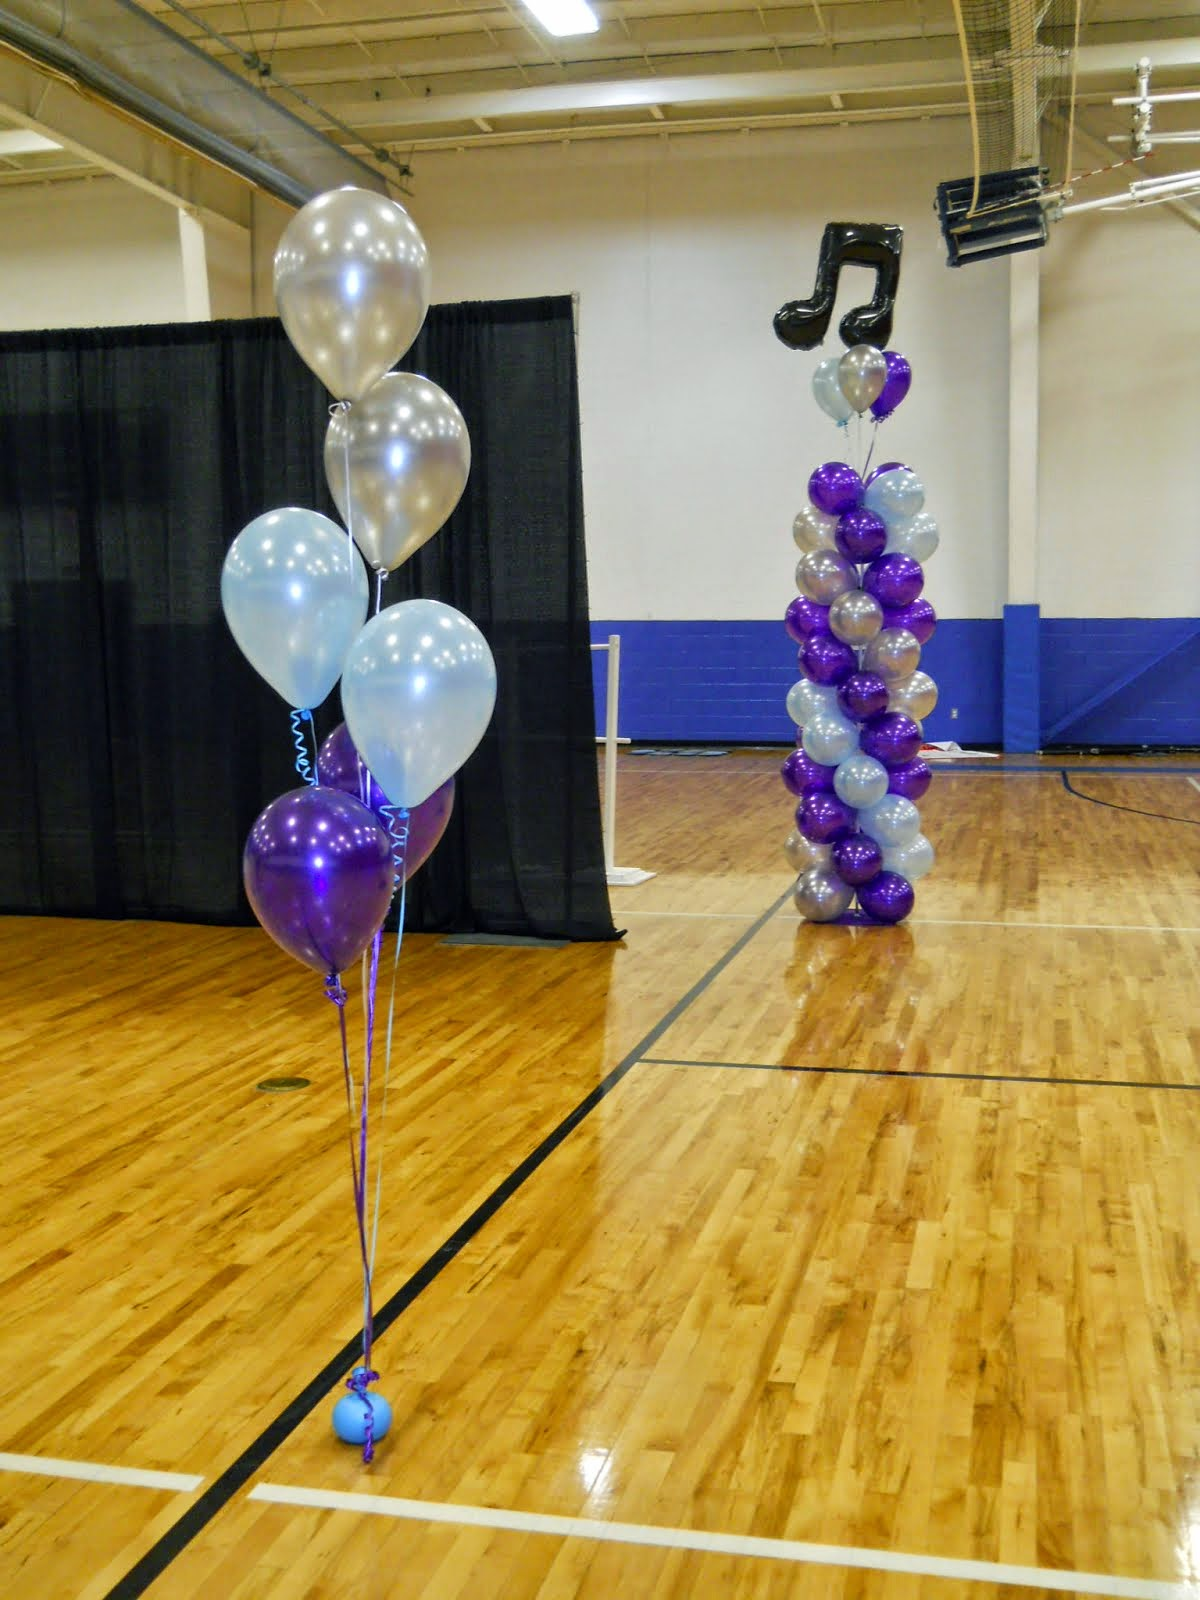 Balloon Decor by Celebrate the Day